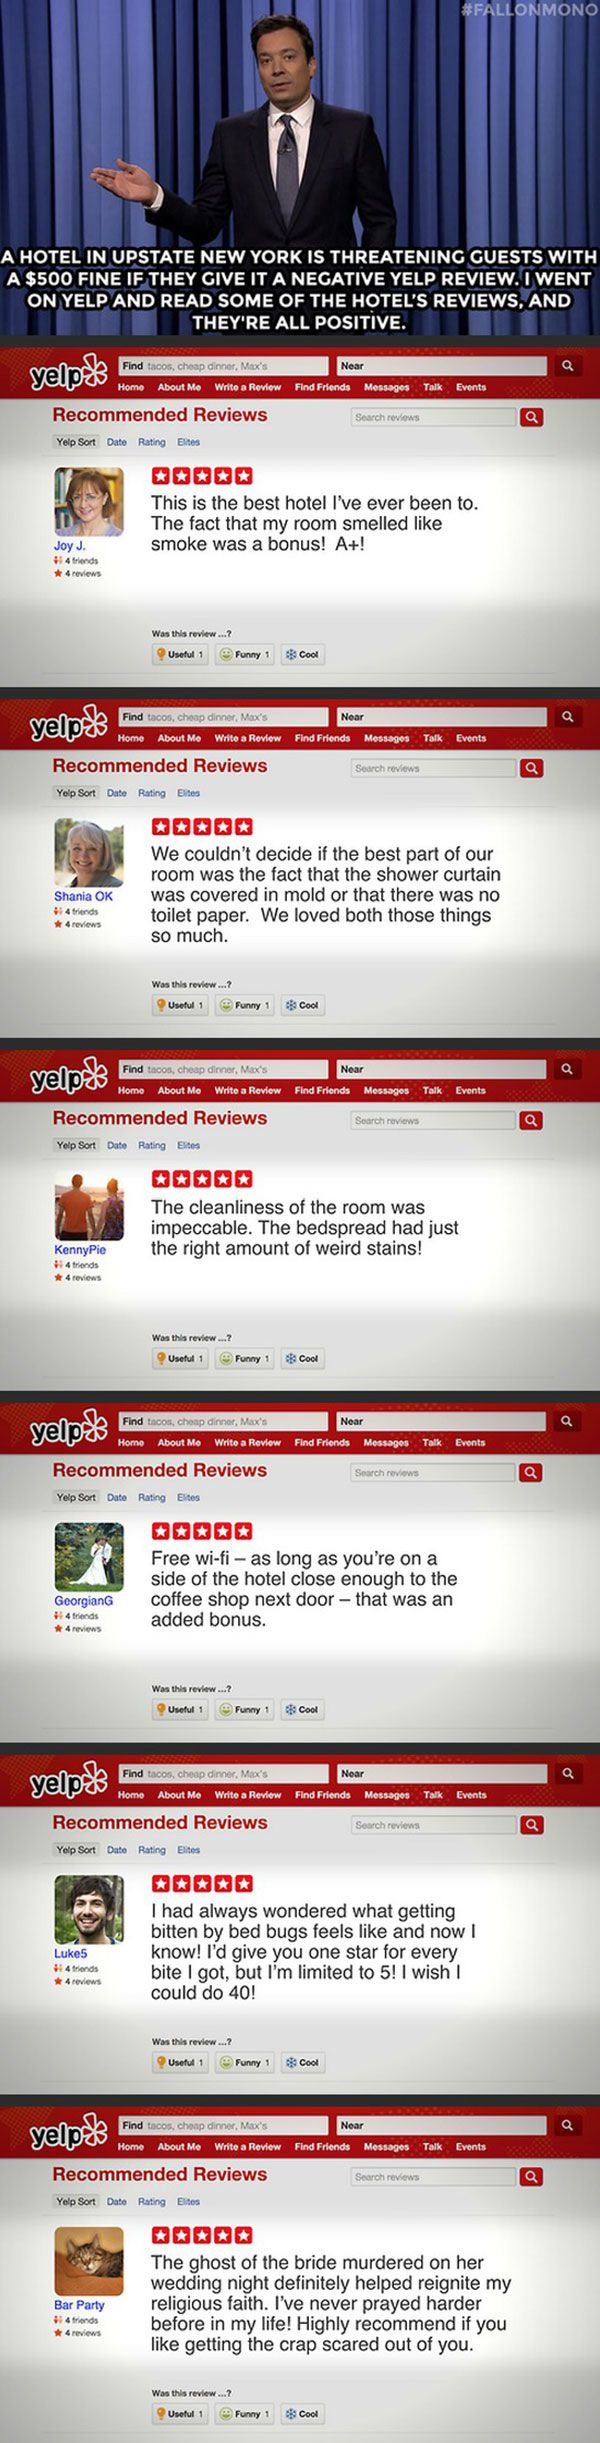 The last review